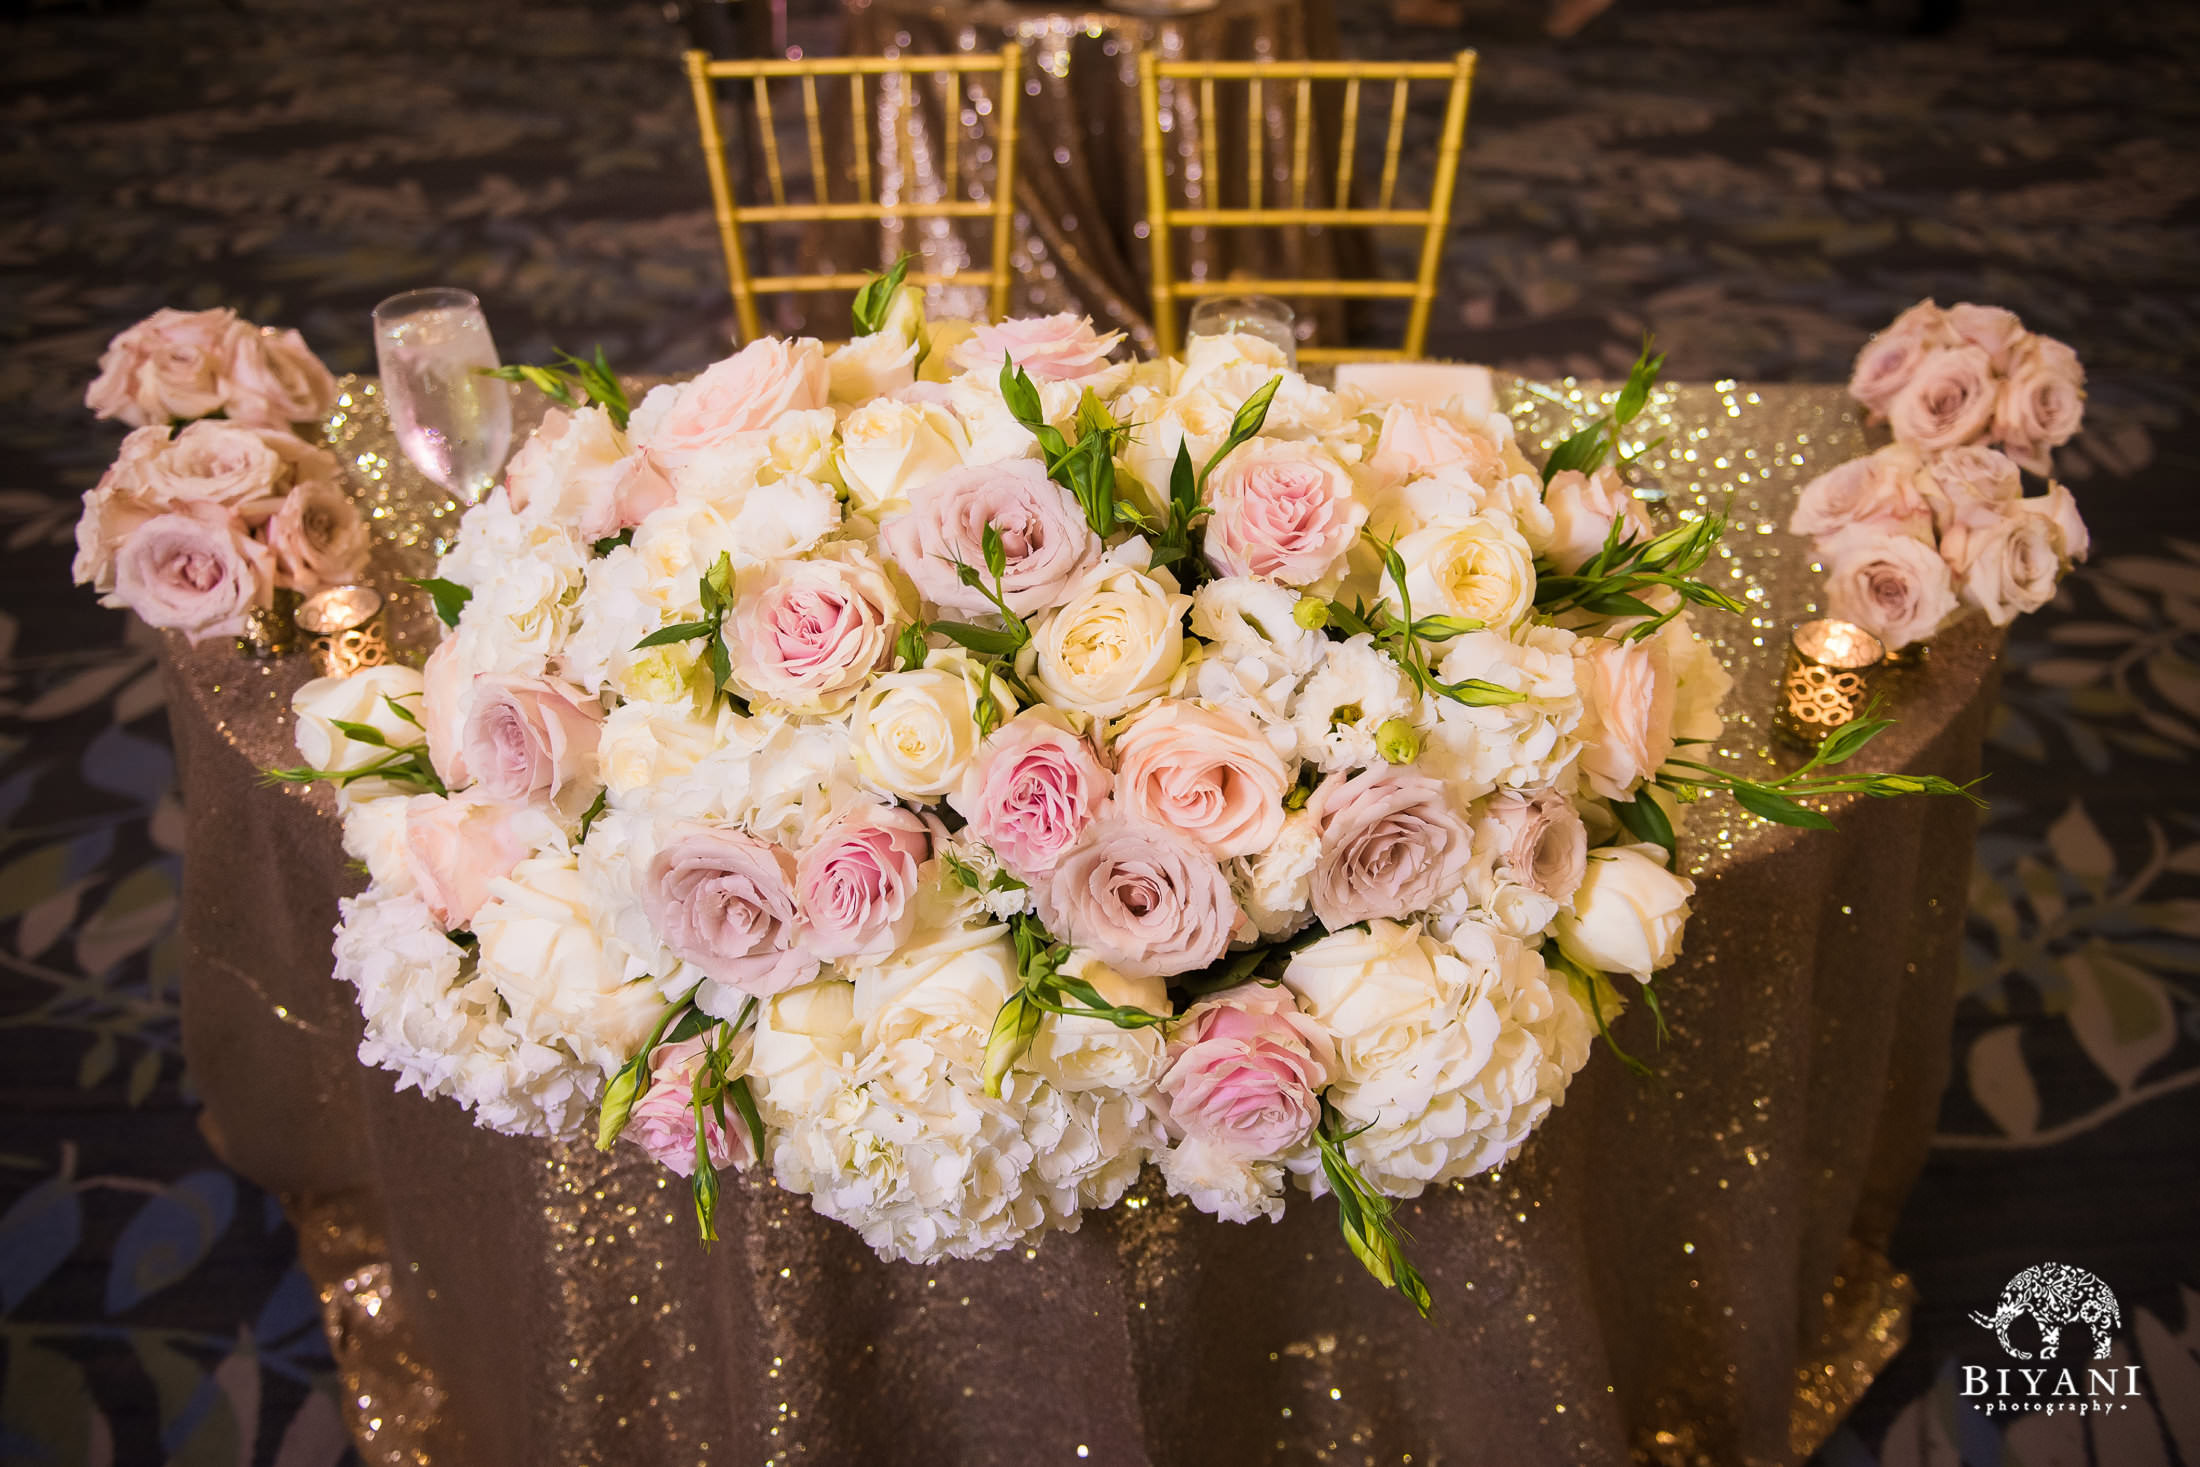 Floral designs at the reception